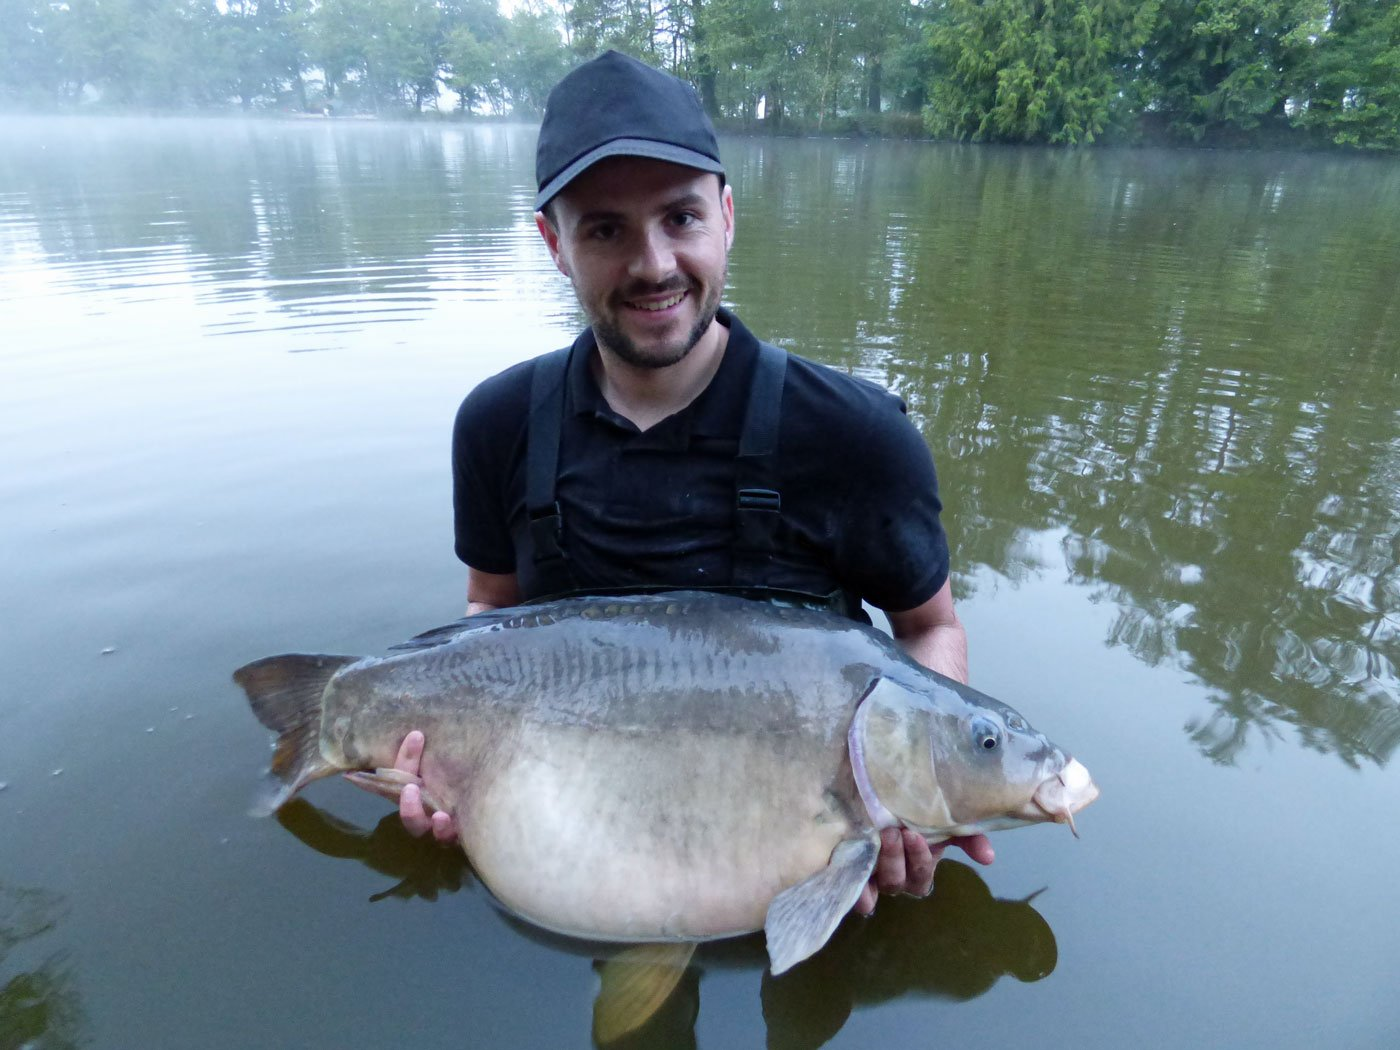 Bruce with Earl Grey at 33lbs mirror carp